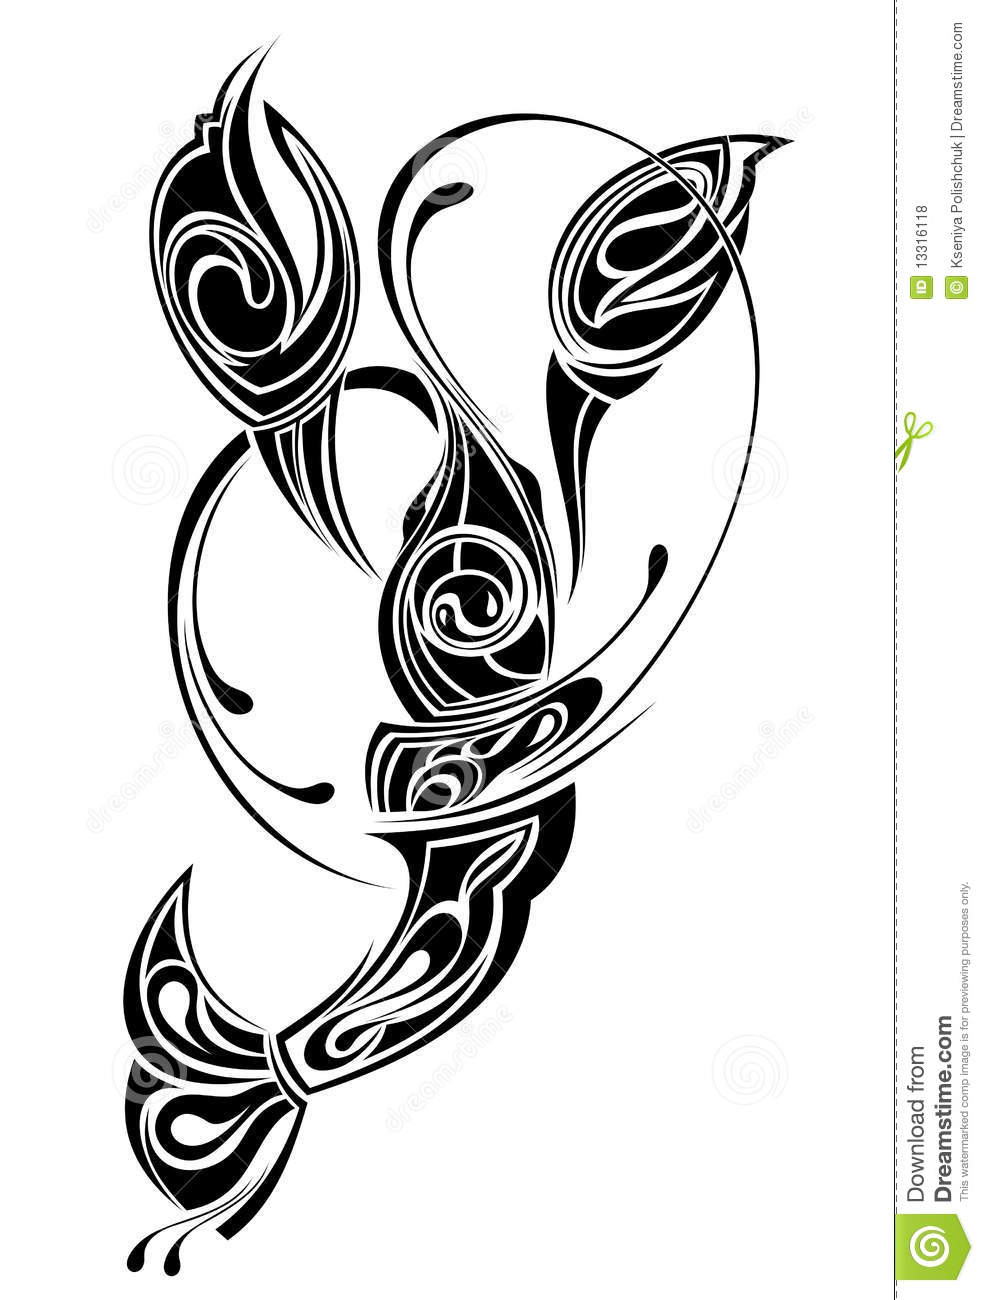 679bd5e96 Sign Of Cancer. Tattoo Design. Stock Vector - Illustration of ...